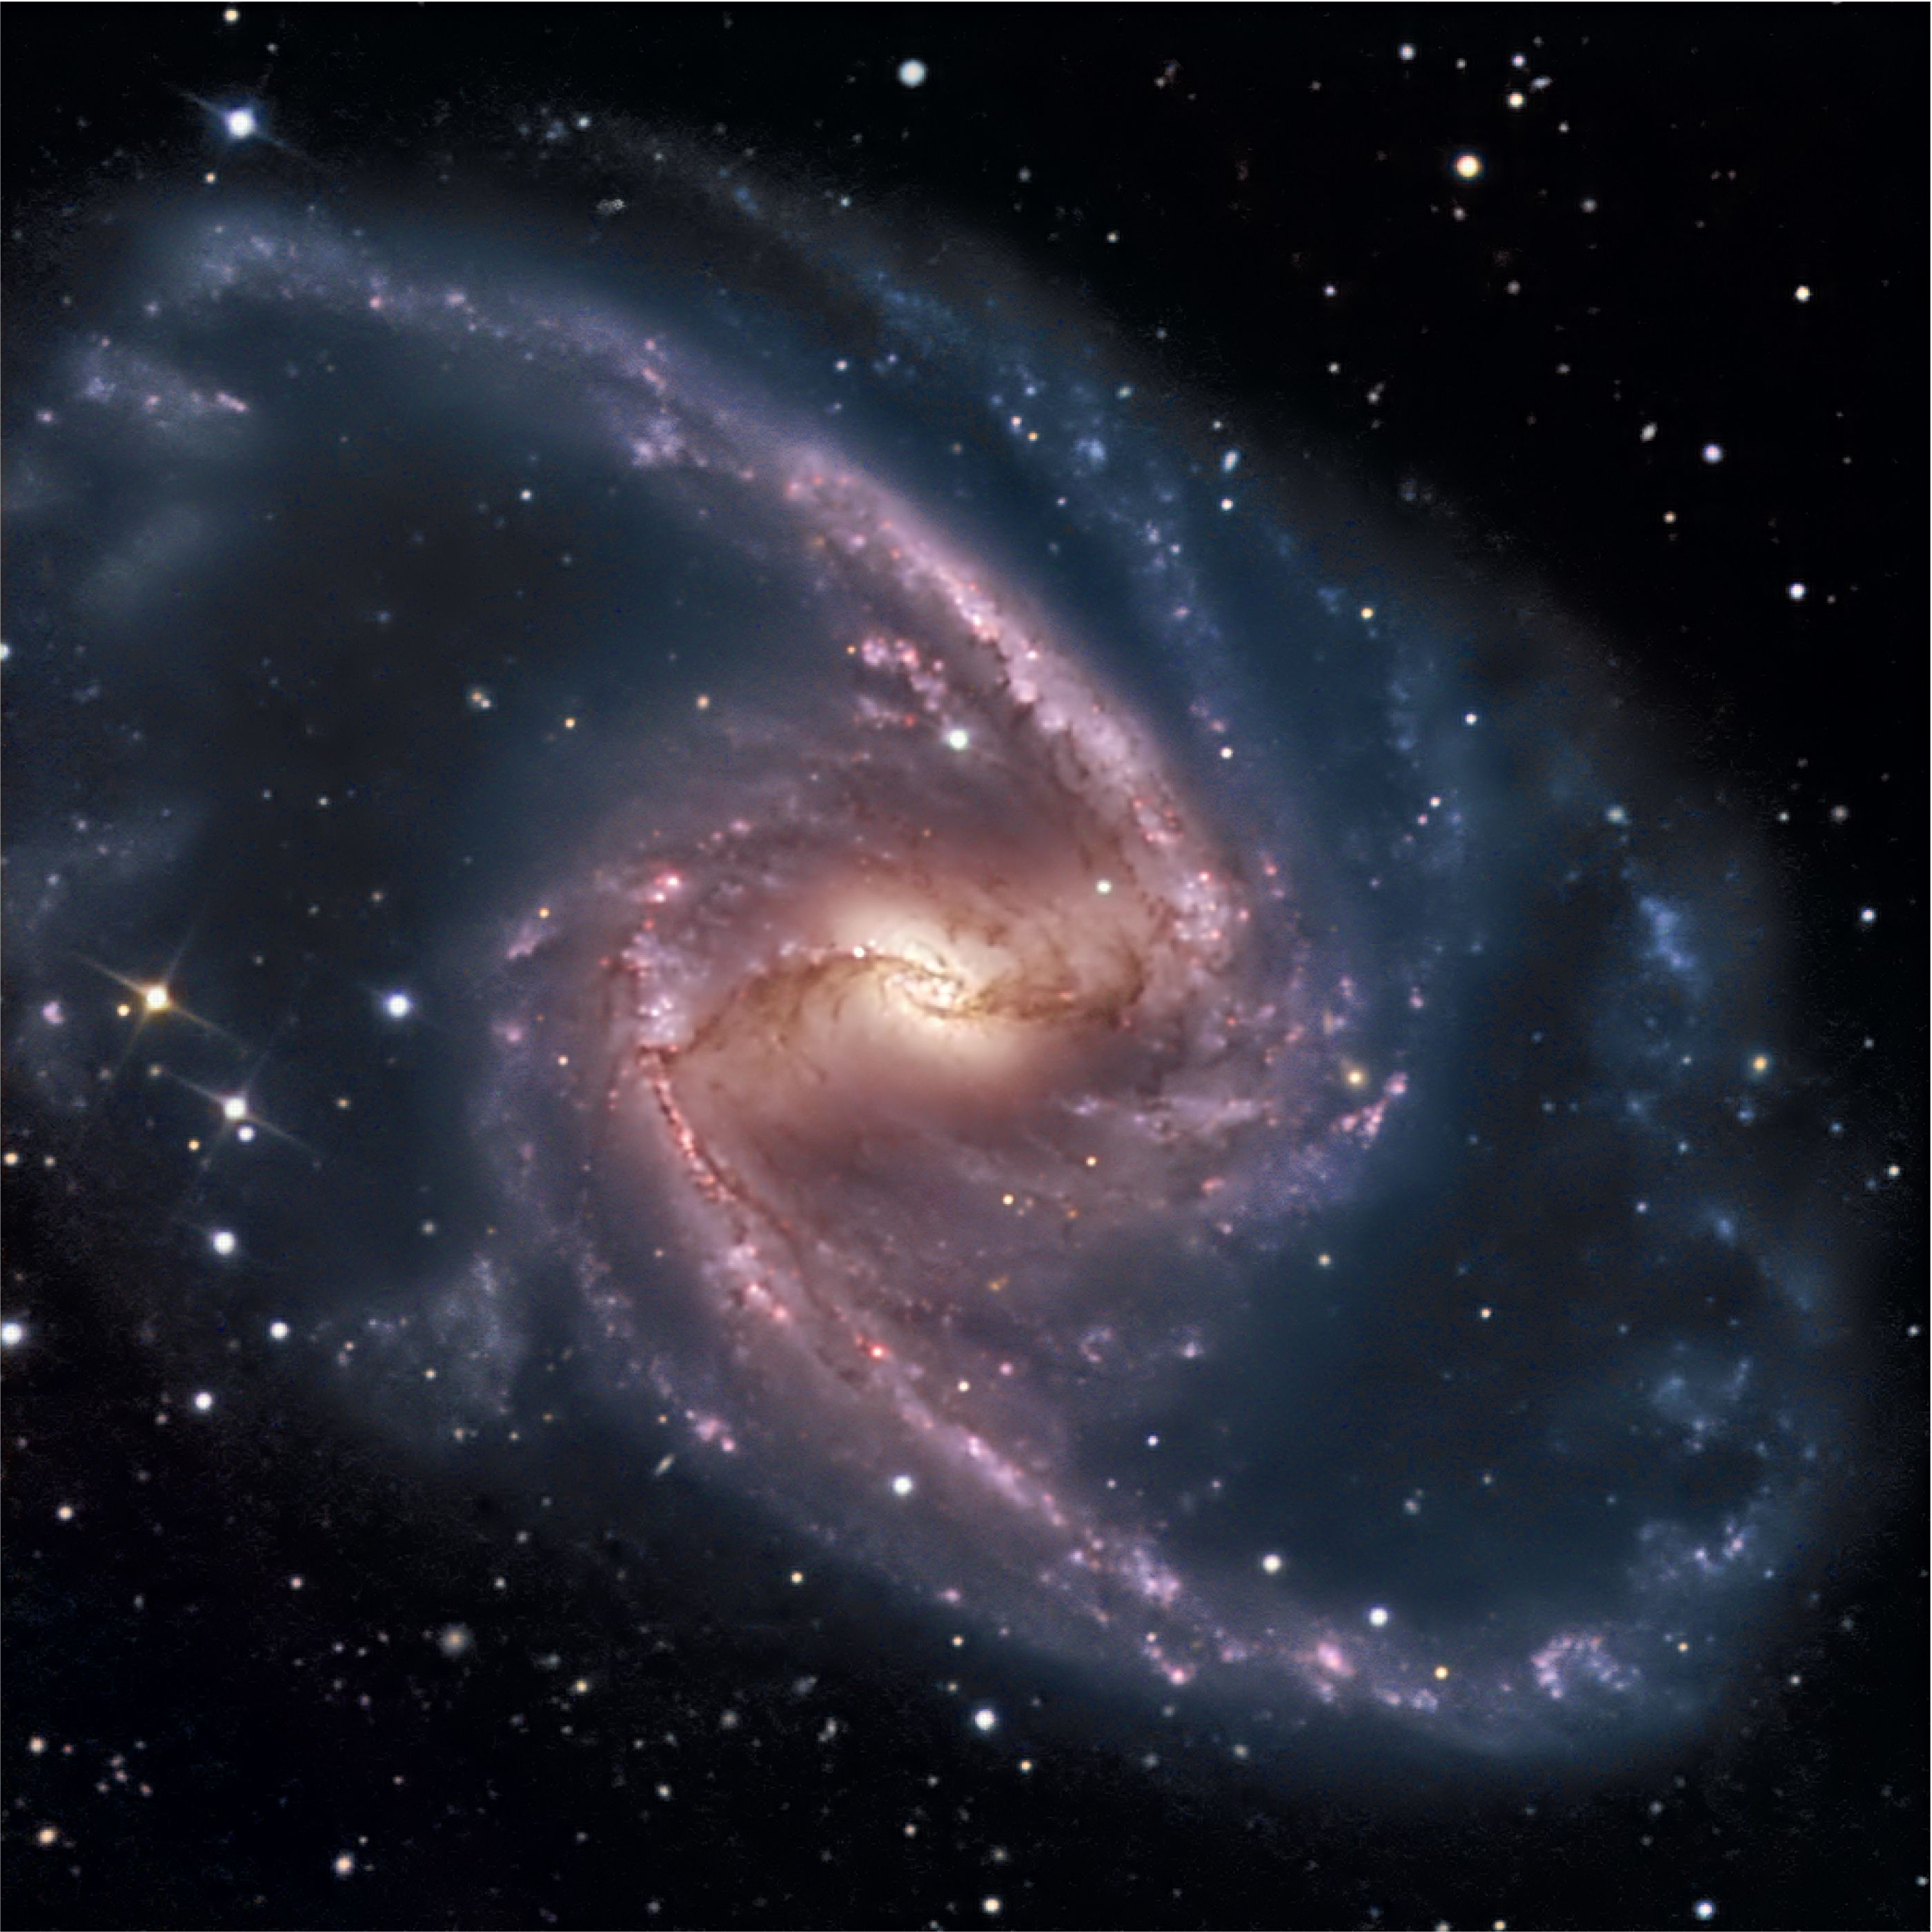 Spiral galaxies of the barred spiral galaxy NGC 1365 in